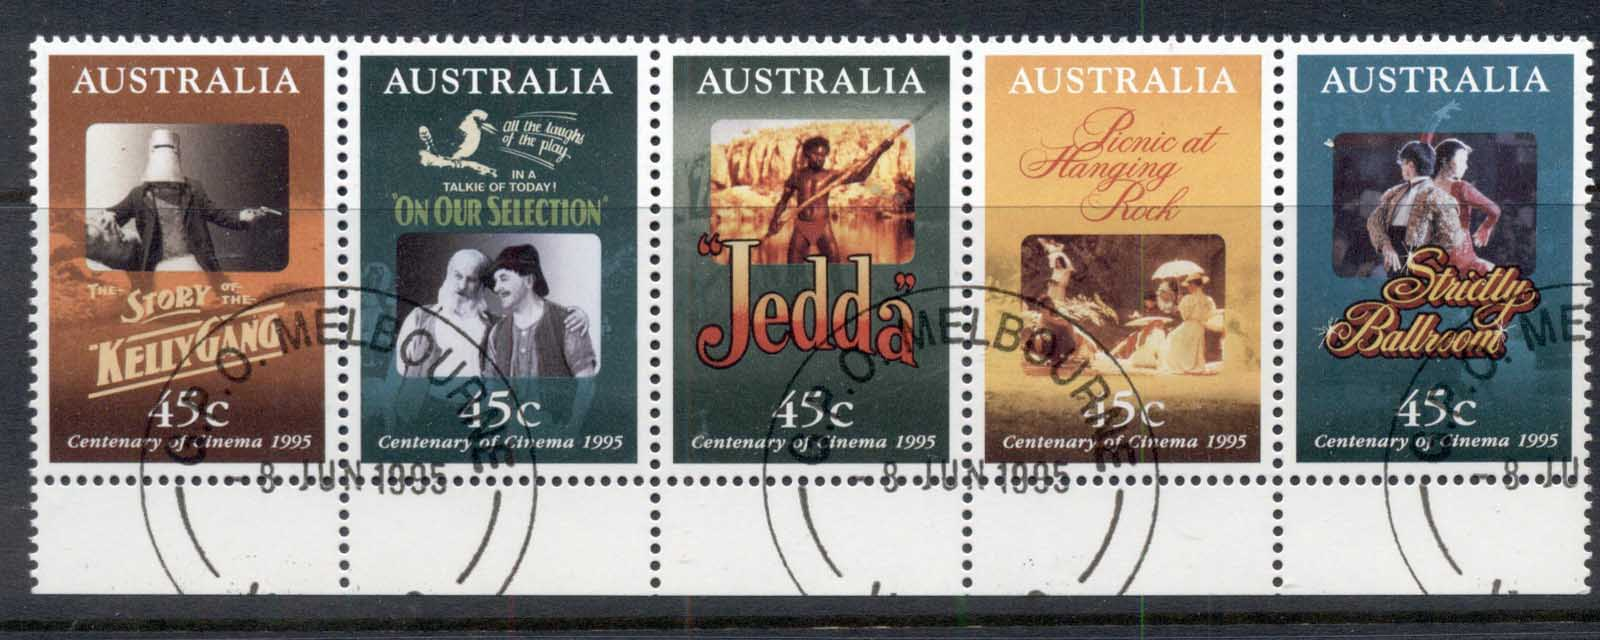 Australia 1995 Centenary of the Cinema CTO